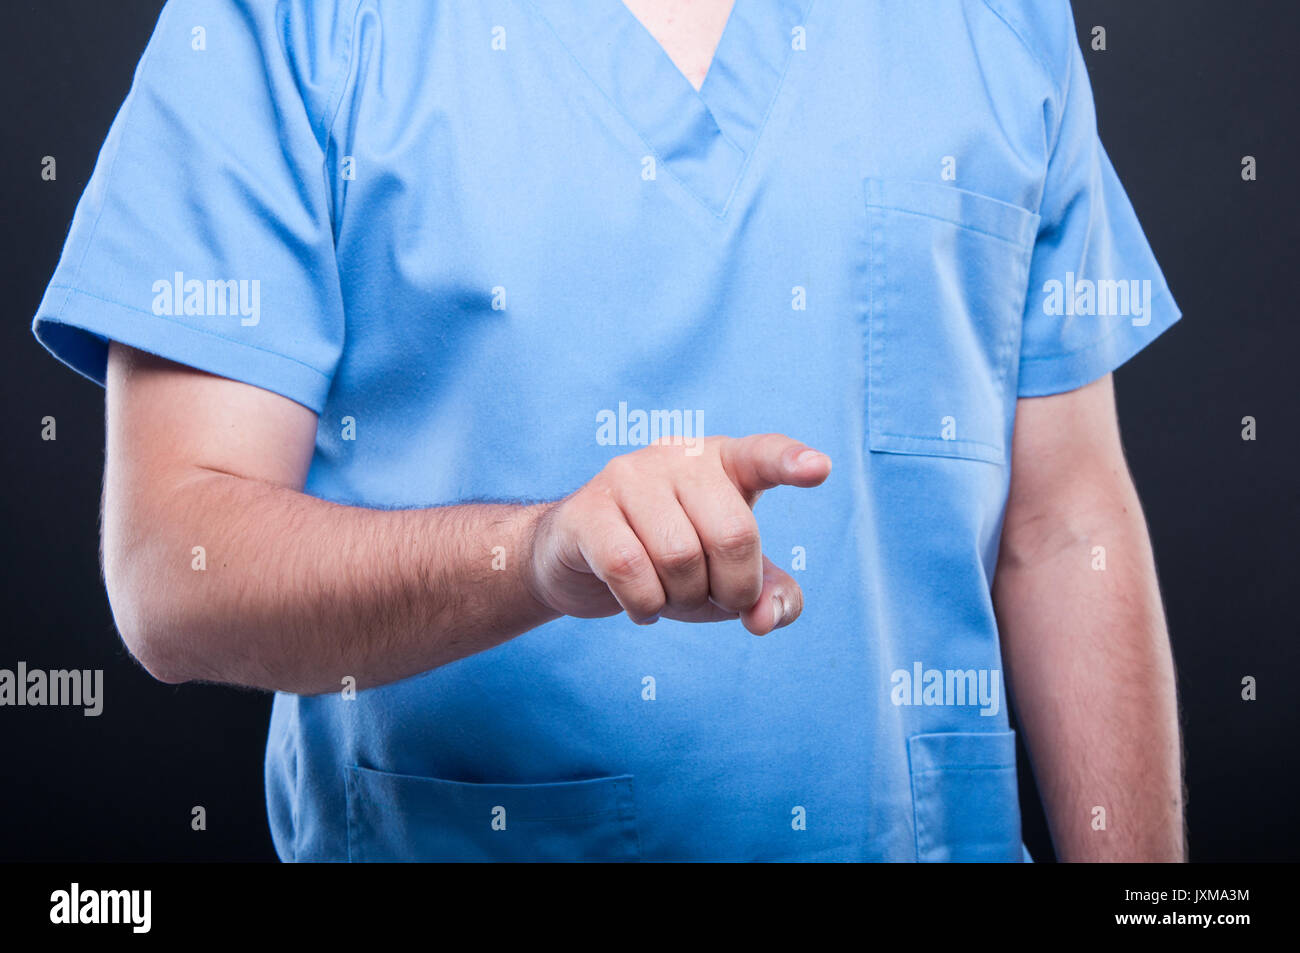 a537ea44d57 Close-up of medical nurse wearing scrubs using touchscreen on black  background - Stock Image